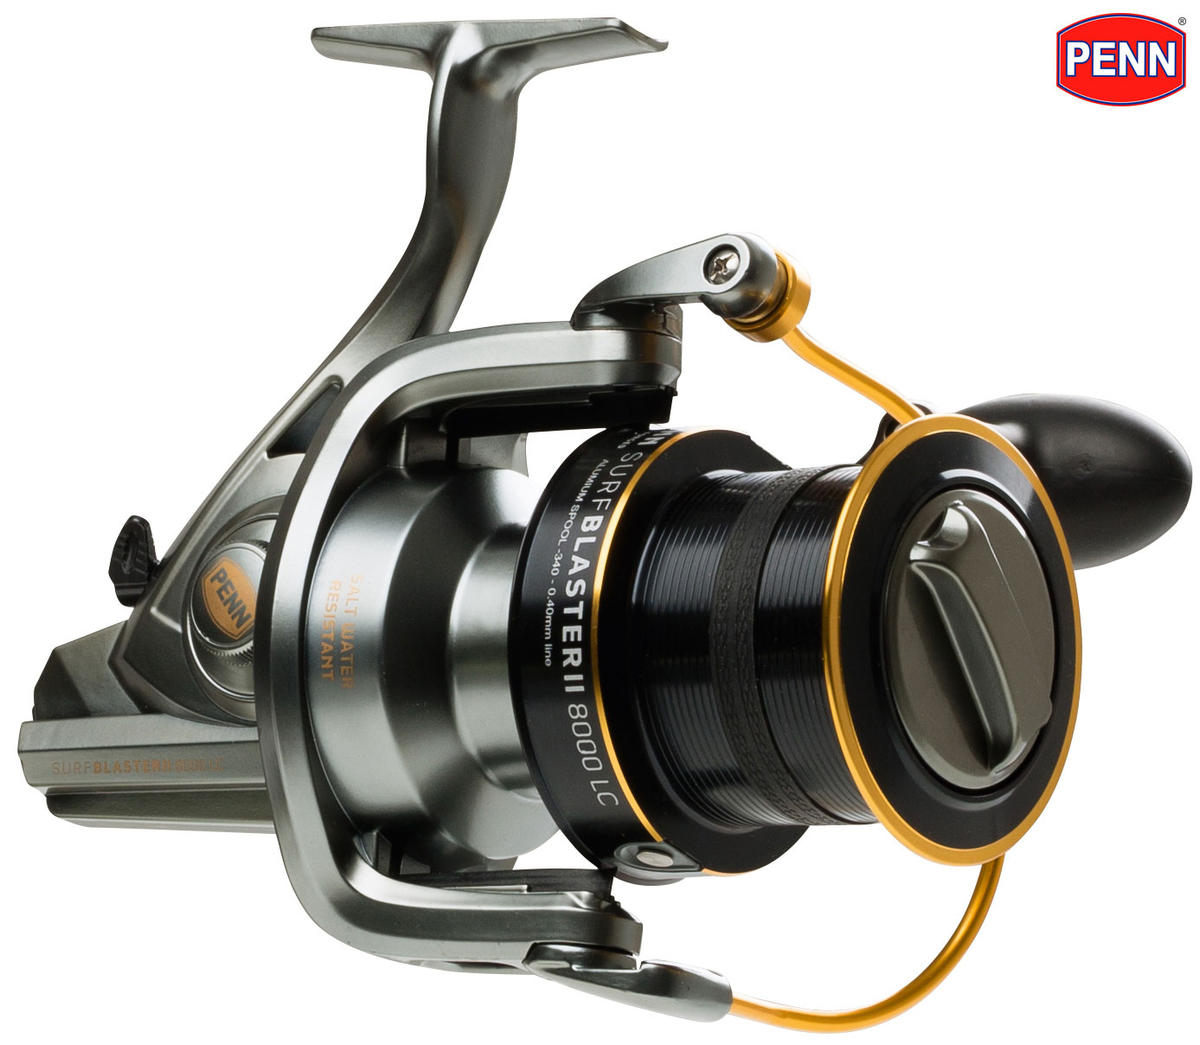 New PENN Surfblaster II 7000 LC Fixed Spool Front Drag Big Pit Surf Casting Reel